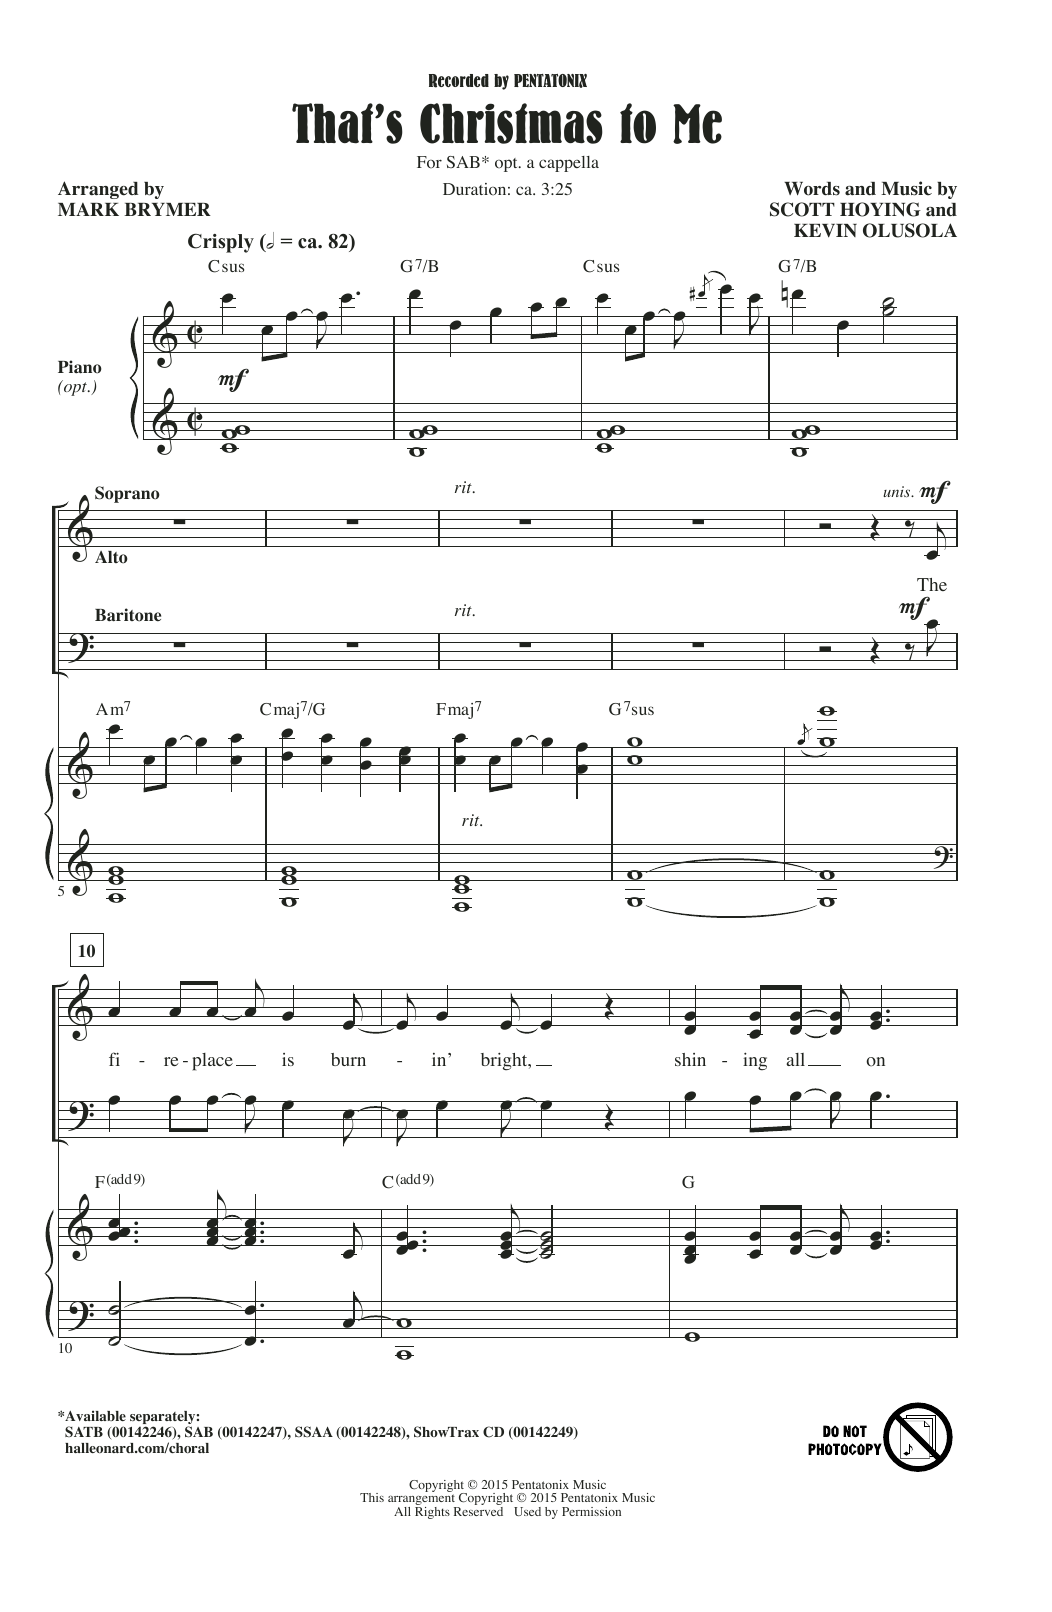 Pentatonix That's Christmas To Me (arr. Mark Brymer) sheet music notes and chords